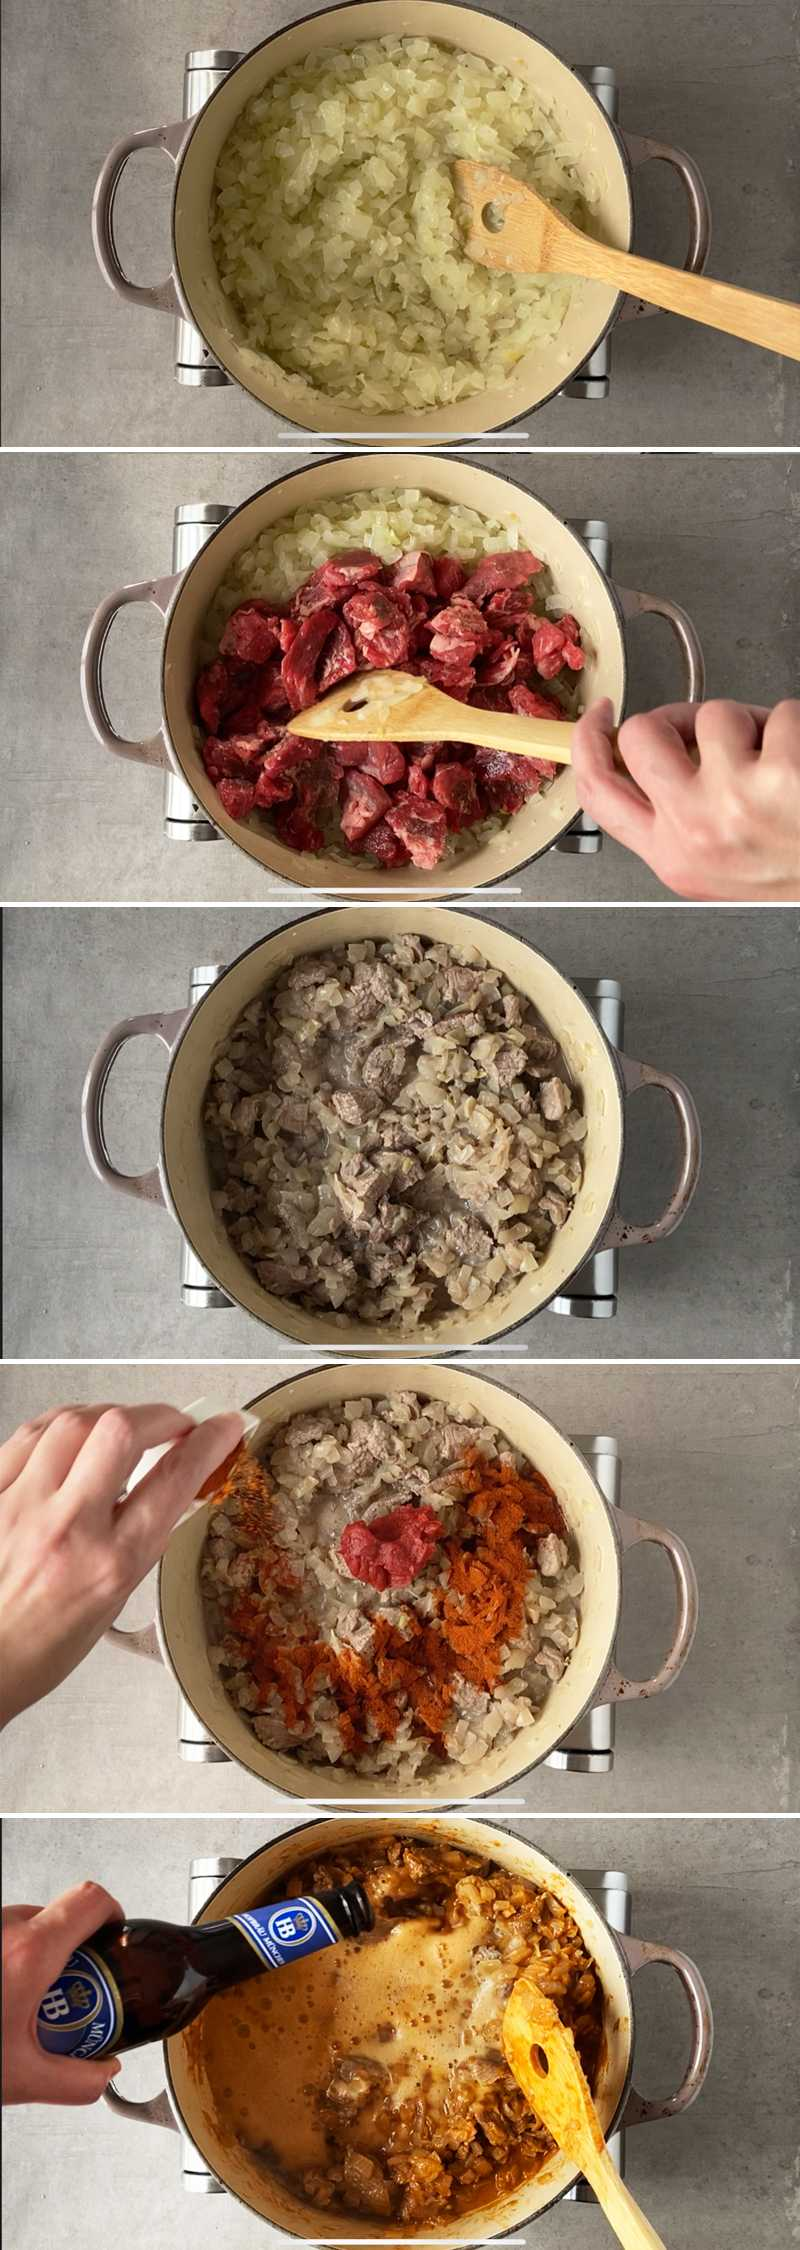 How to make German beef goulash with dark beer - step by step picture collage.